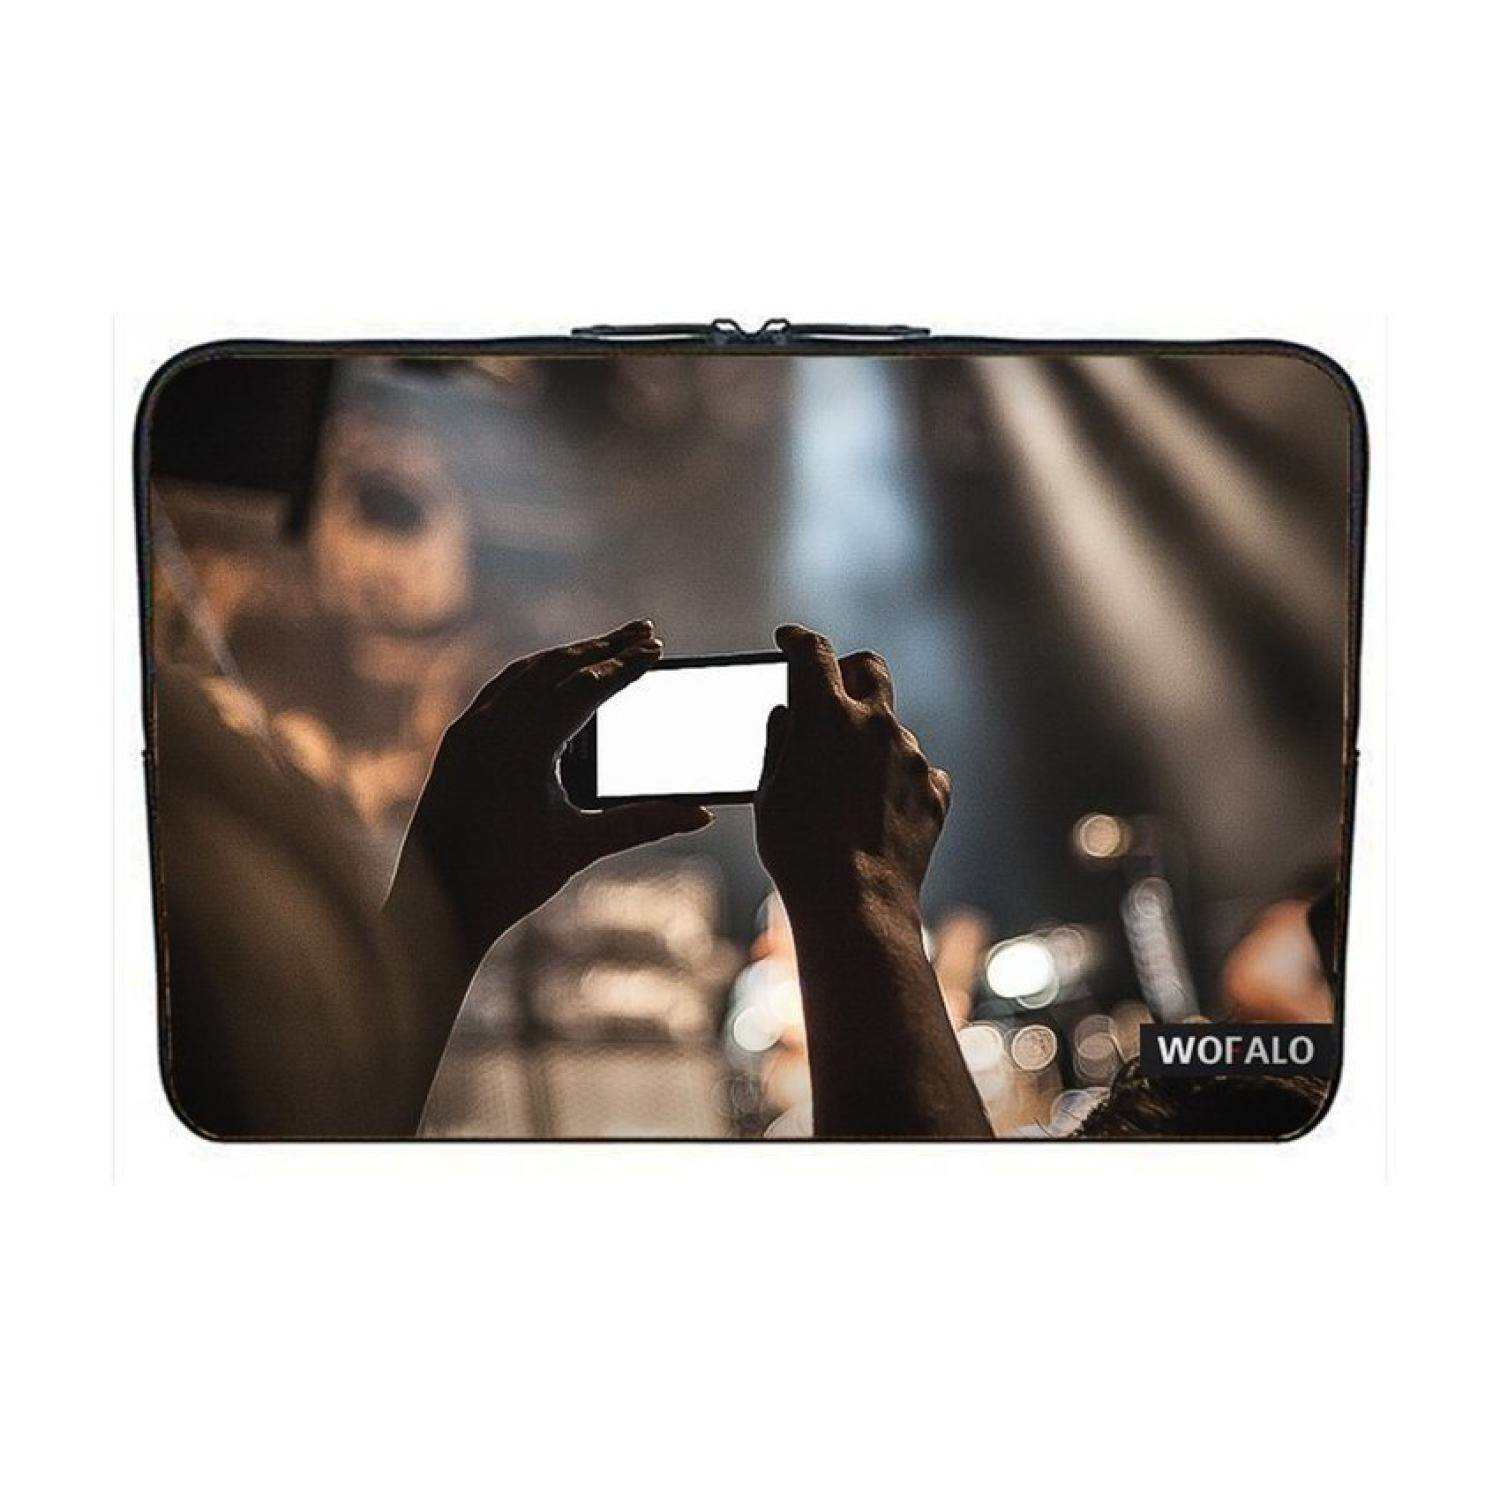 WOFALO 12.6 12.8 13 13.3 Inch Laptop Sleeve Case Bag Cover Neoprenefor Macbook/Netbook/Laptop/Notebook/Ultrabook Smartphone camerafilm shoot camera photography spectators hand fan - intl